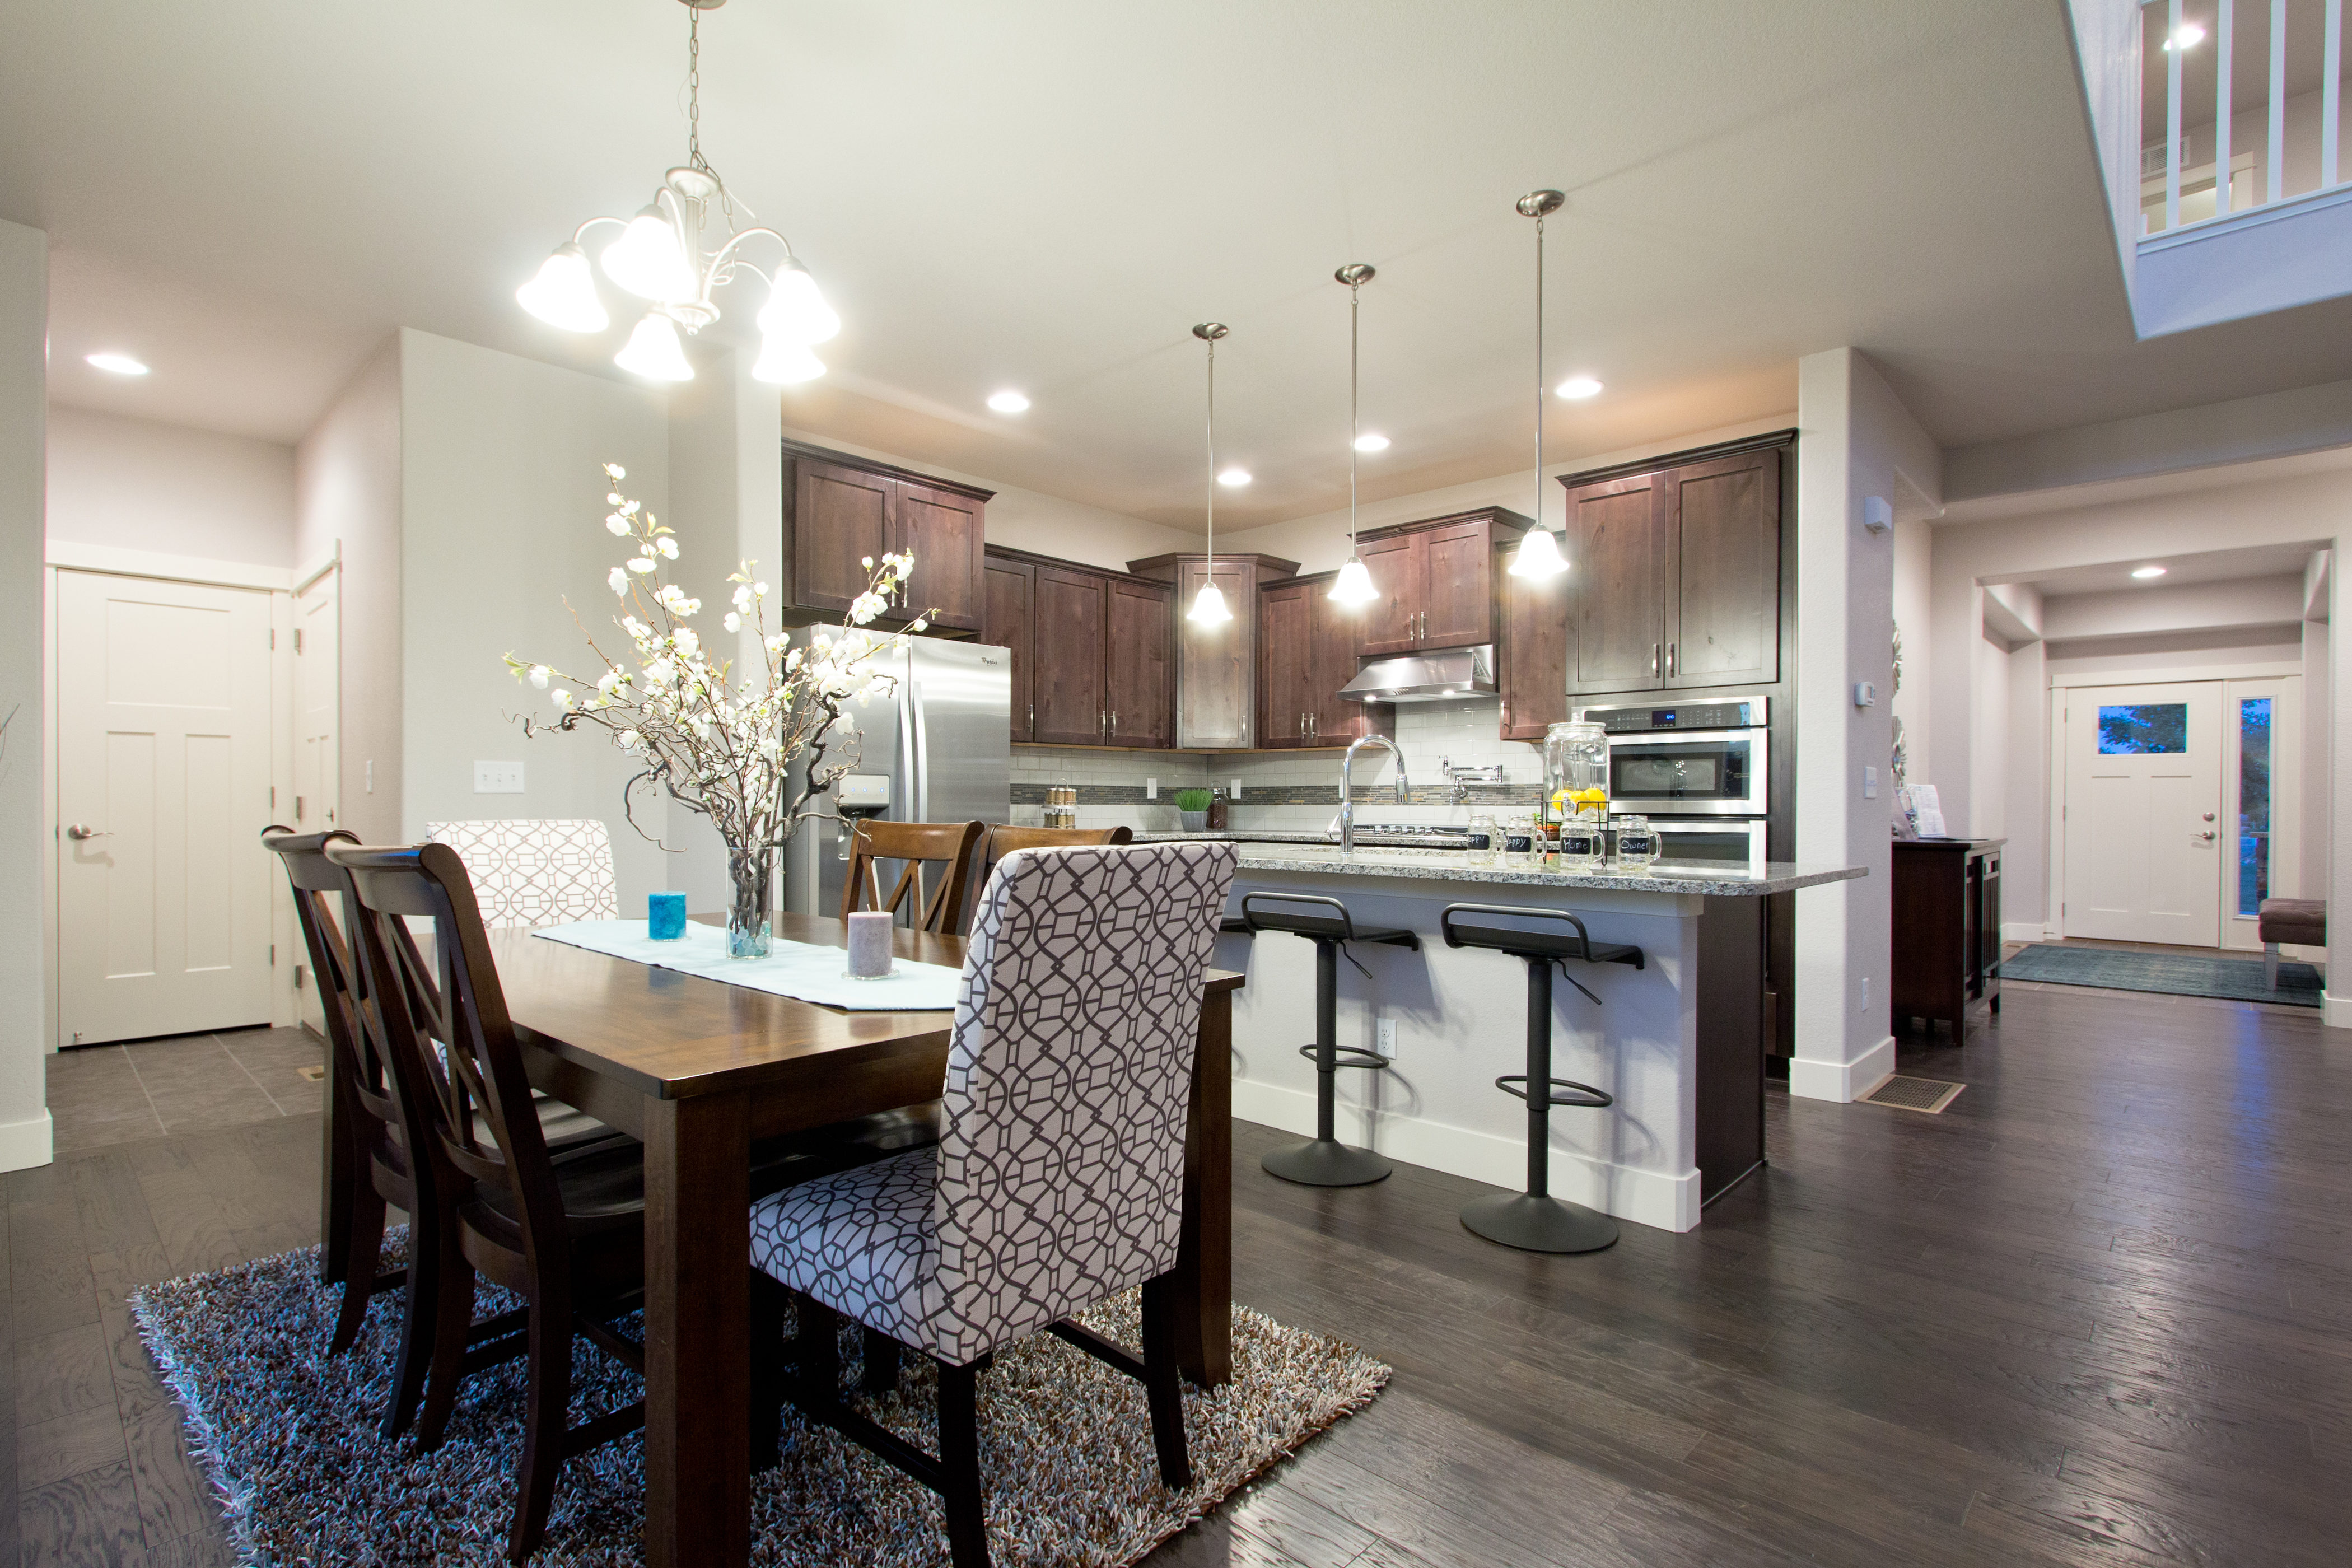 13-montrose-fort_collins-kitchen-dining-new_houses_for_sale